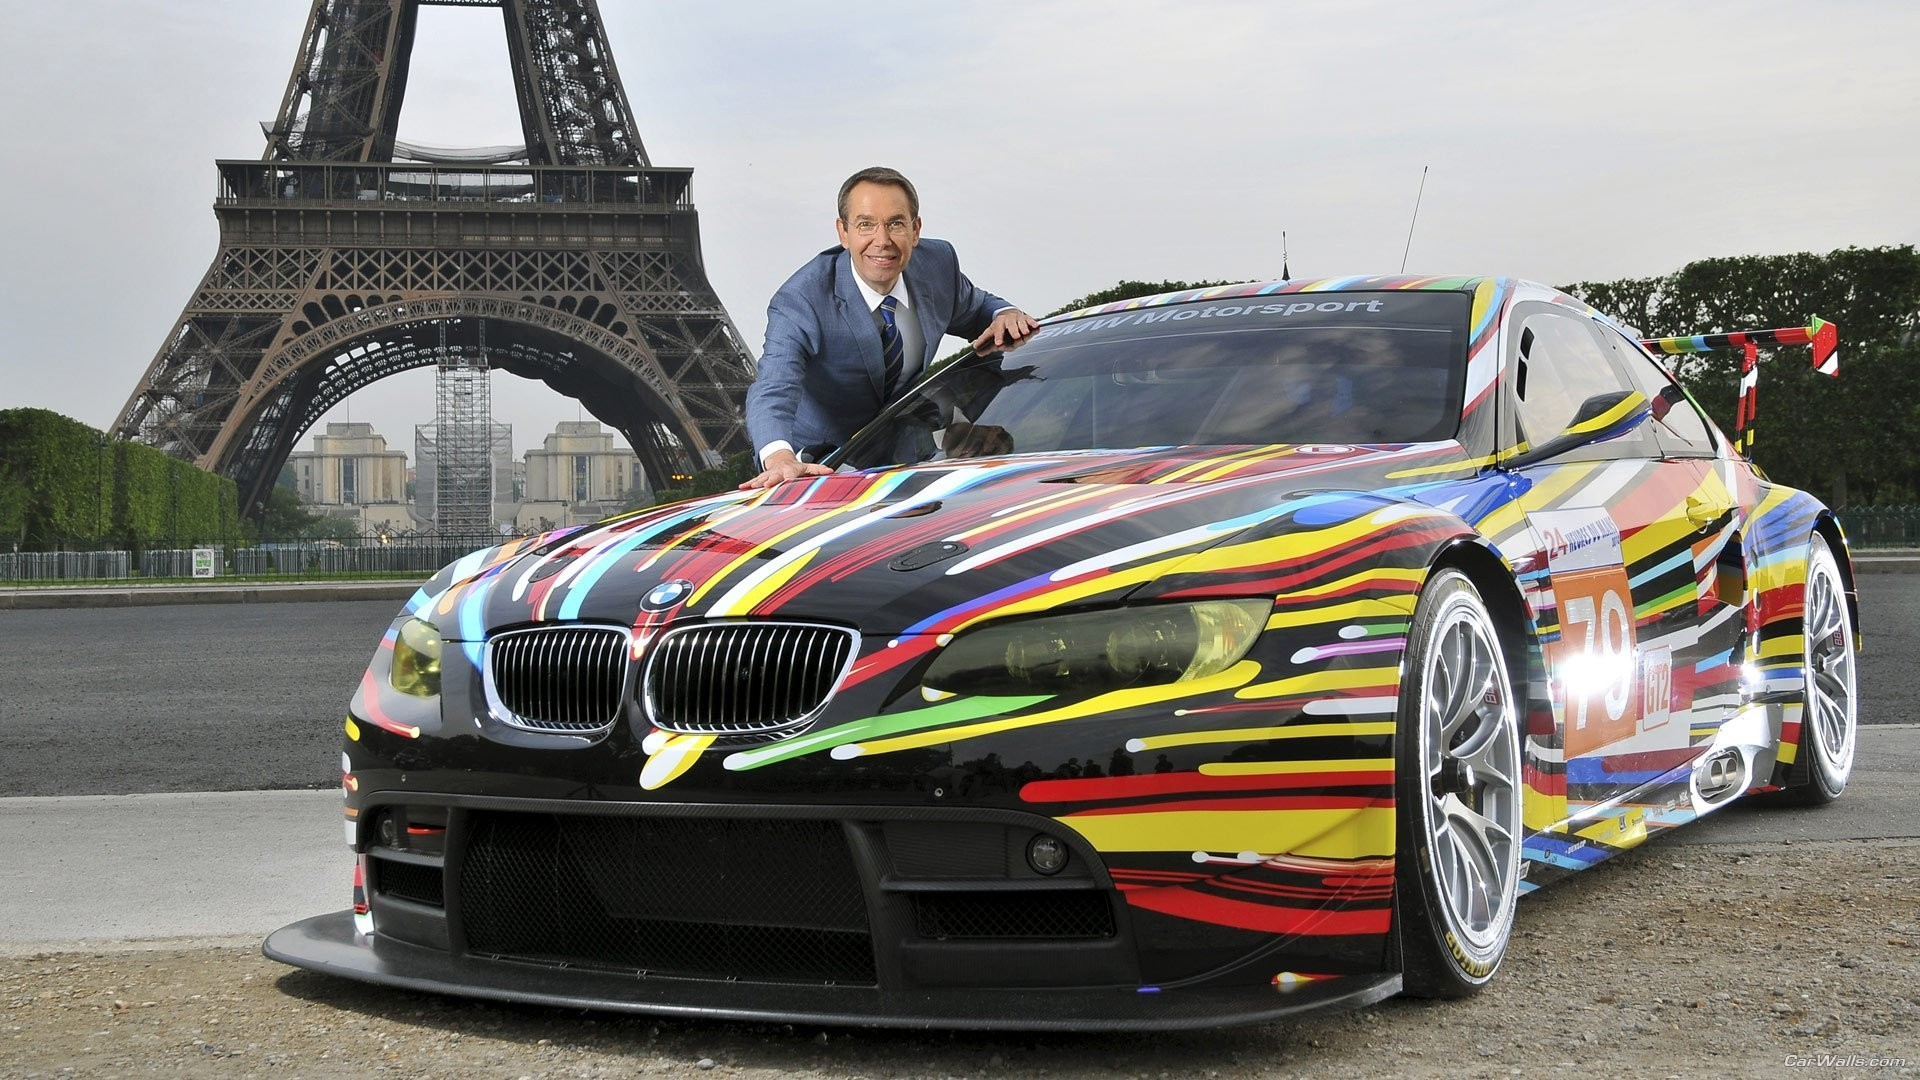 Eiffel Tower cars bmw HD Wallpaper